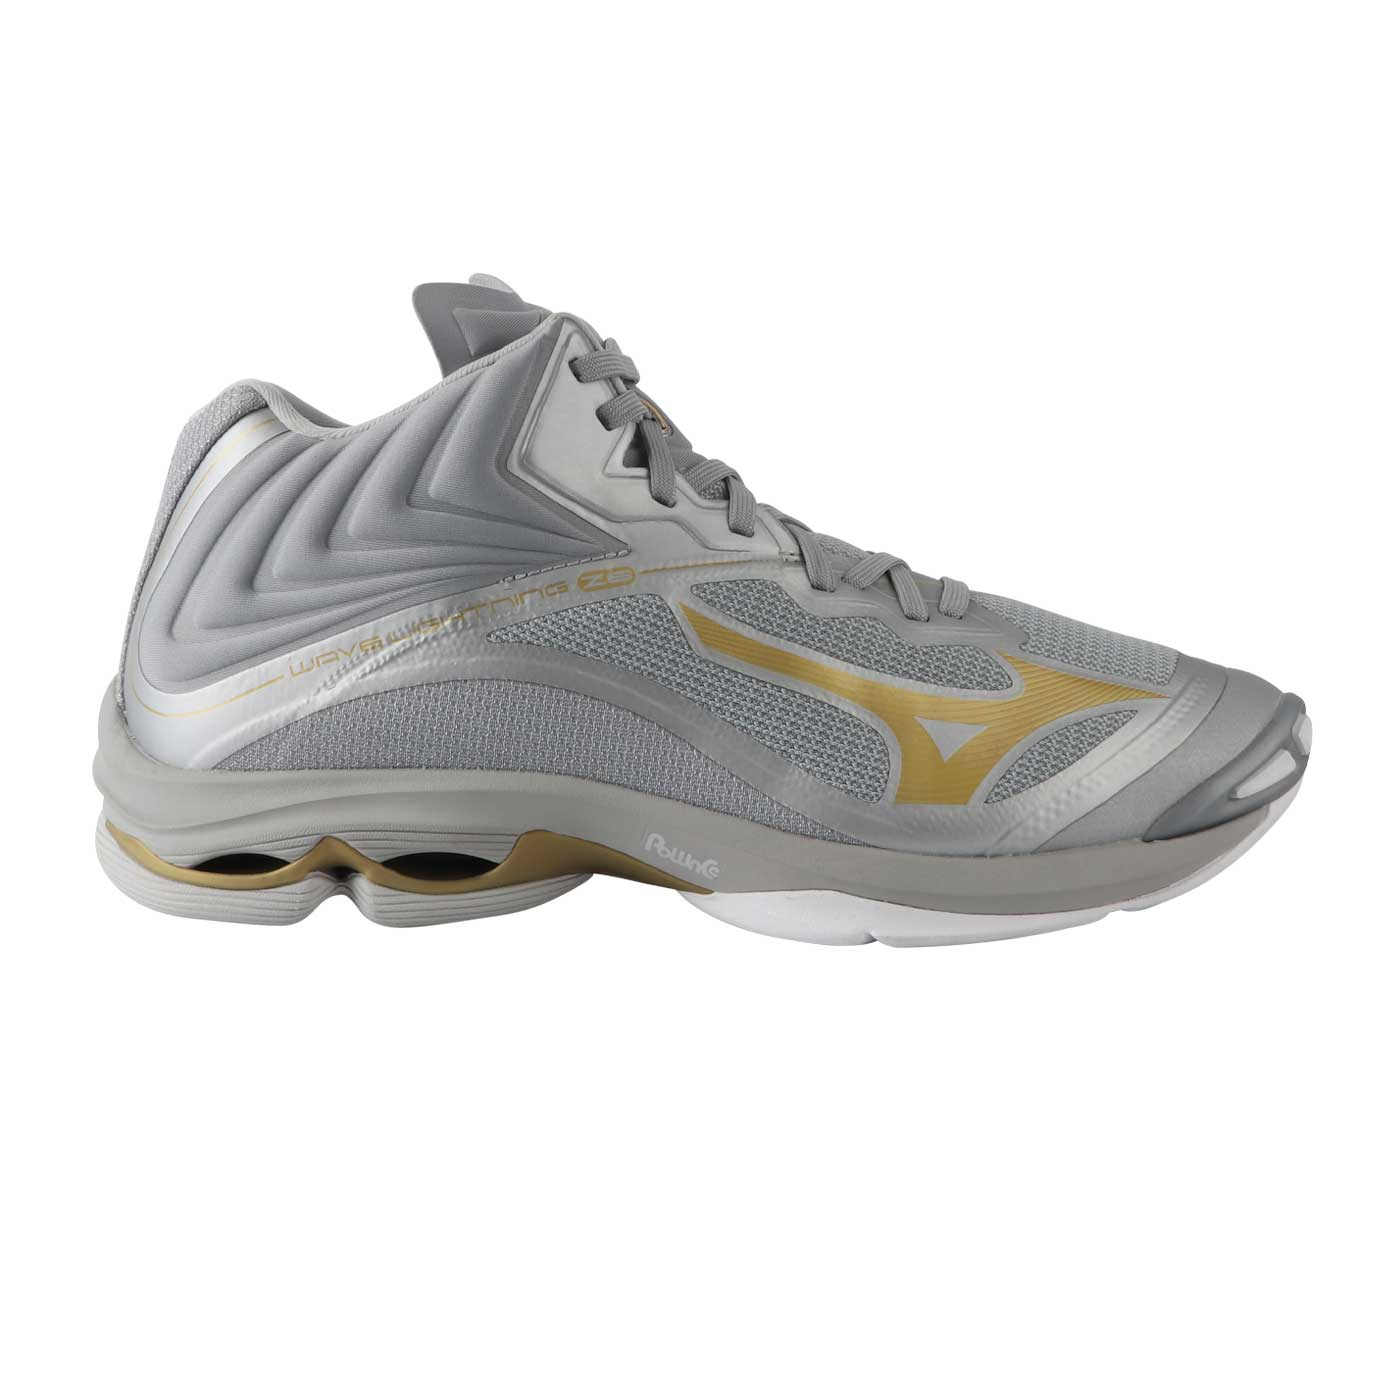 WAVE LIGHTNING Z6 MID-SILVER/GOLD/WHITE